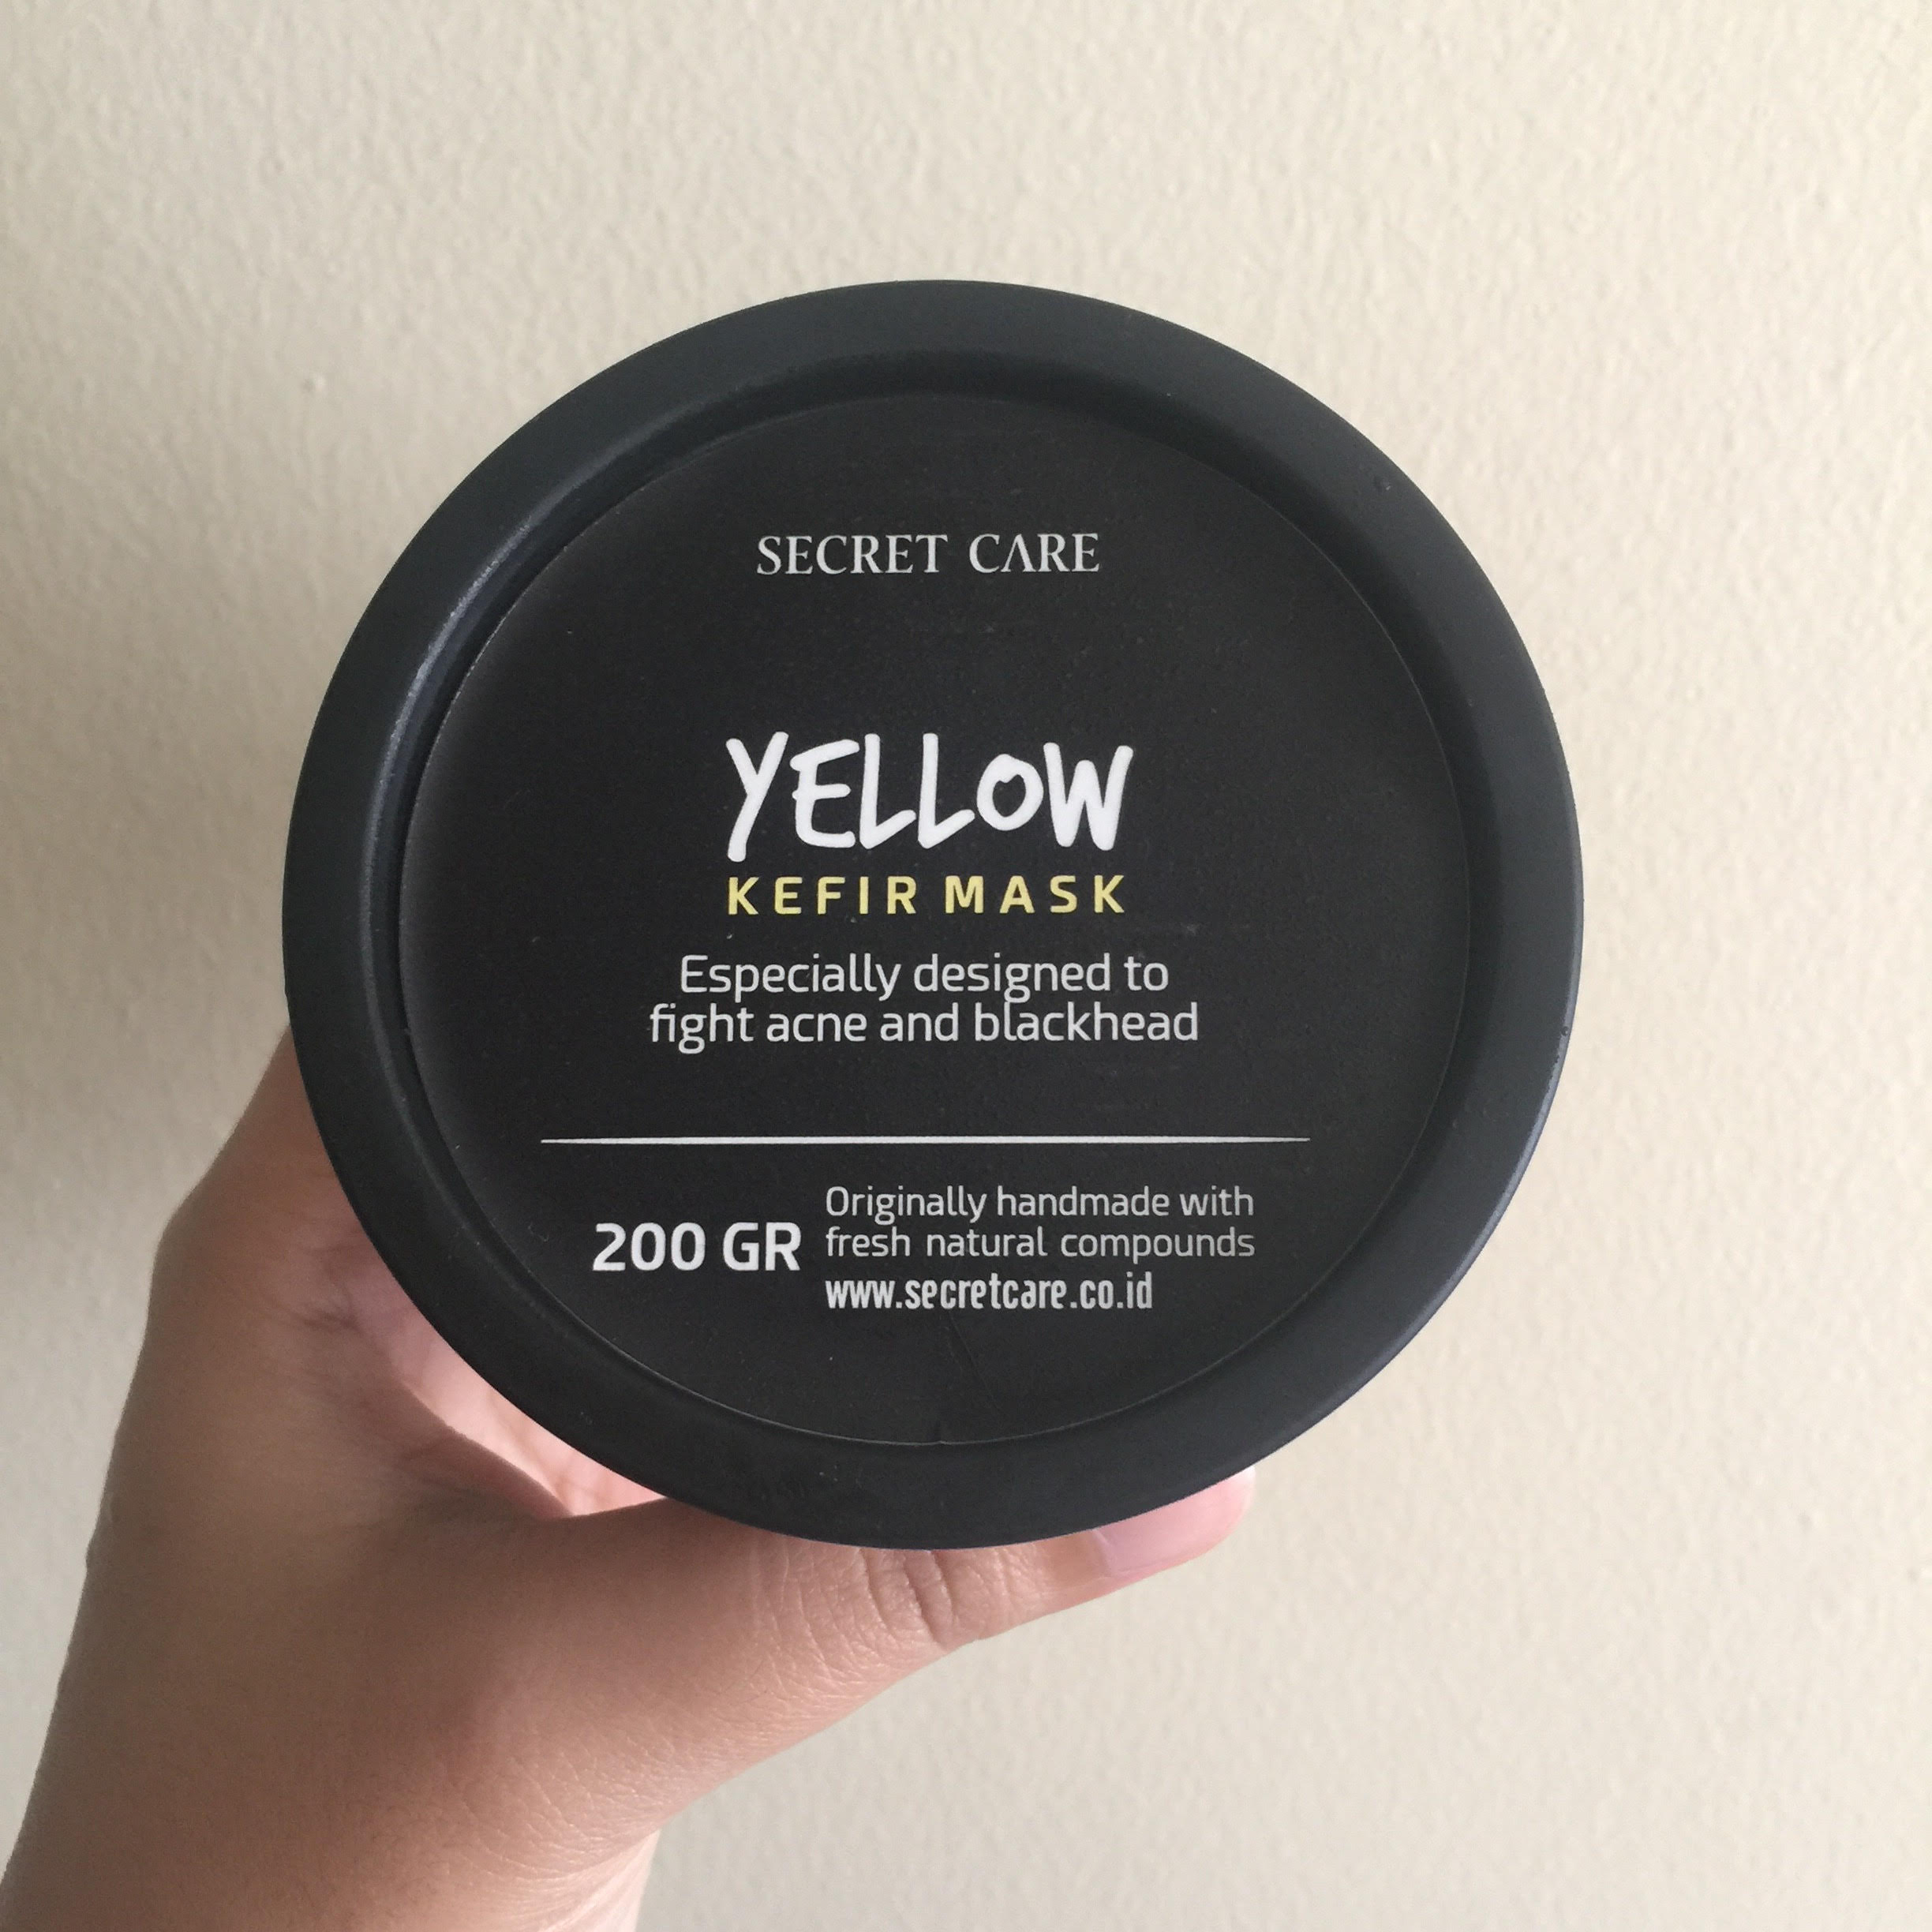 Secret Care Yellow Kefir Mask